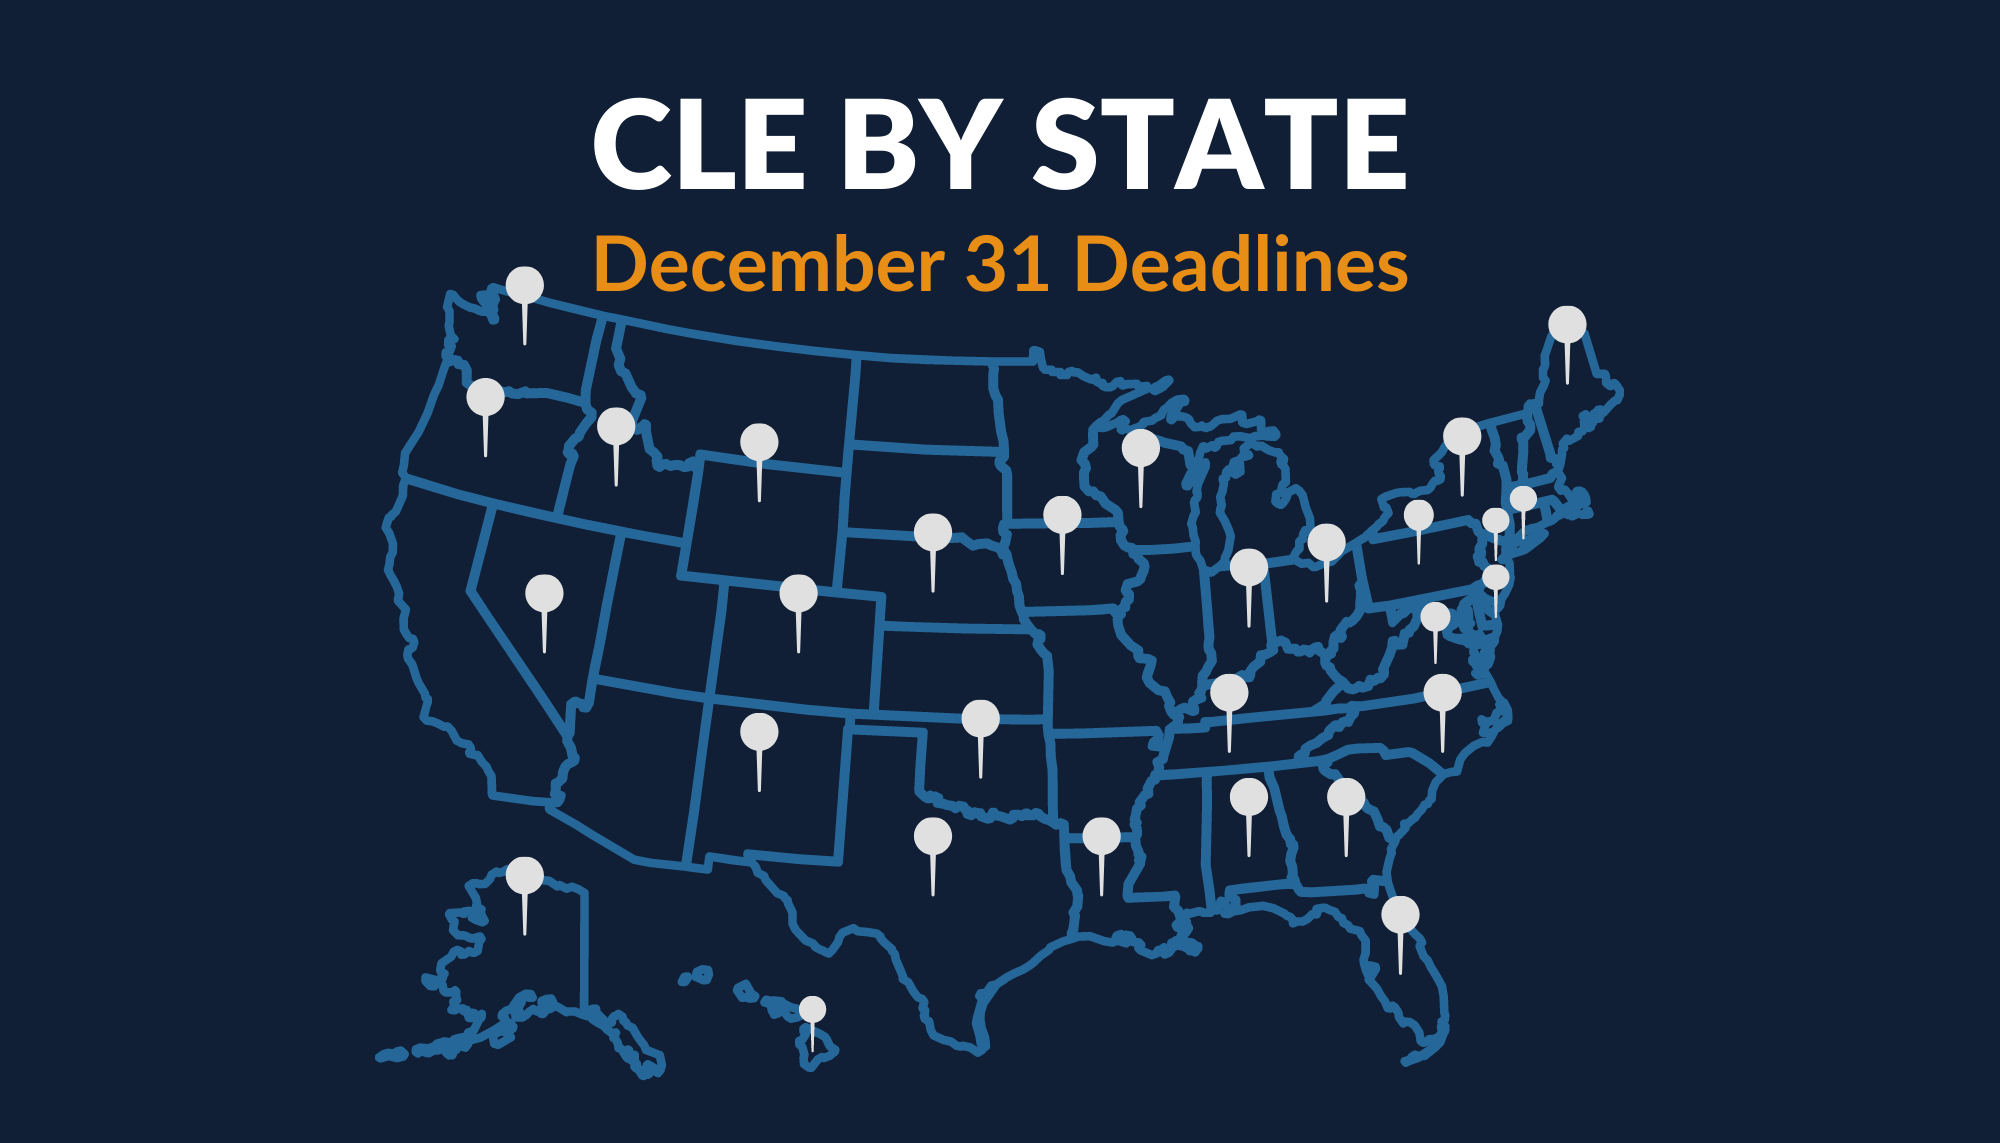 December 31st CLE Deadlines by State